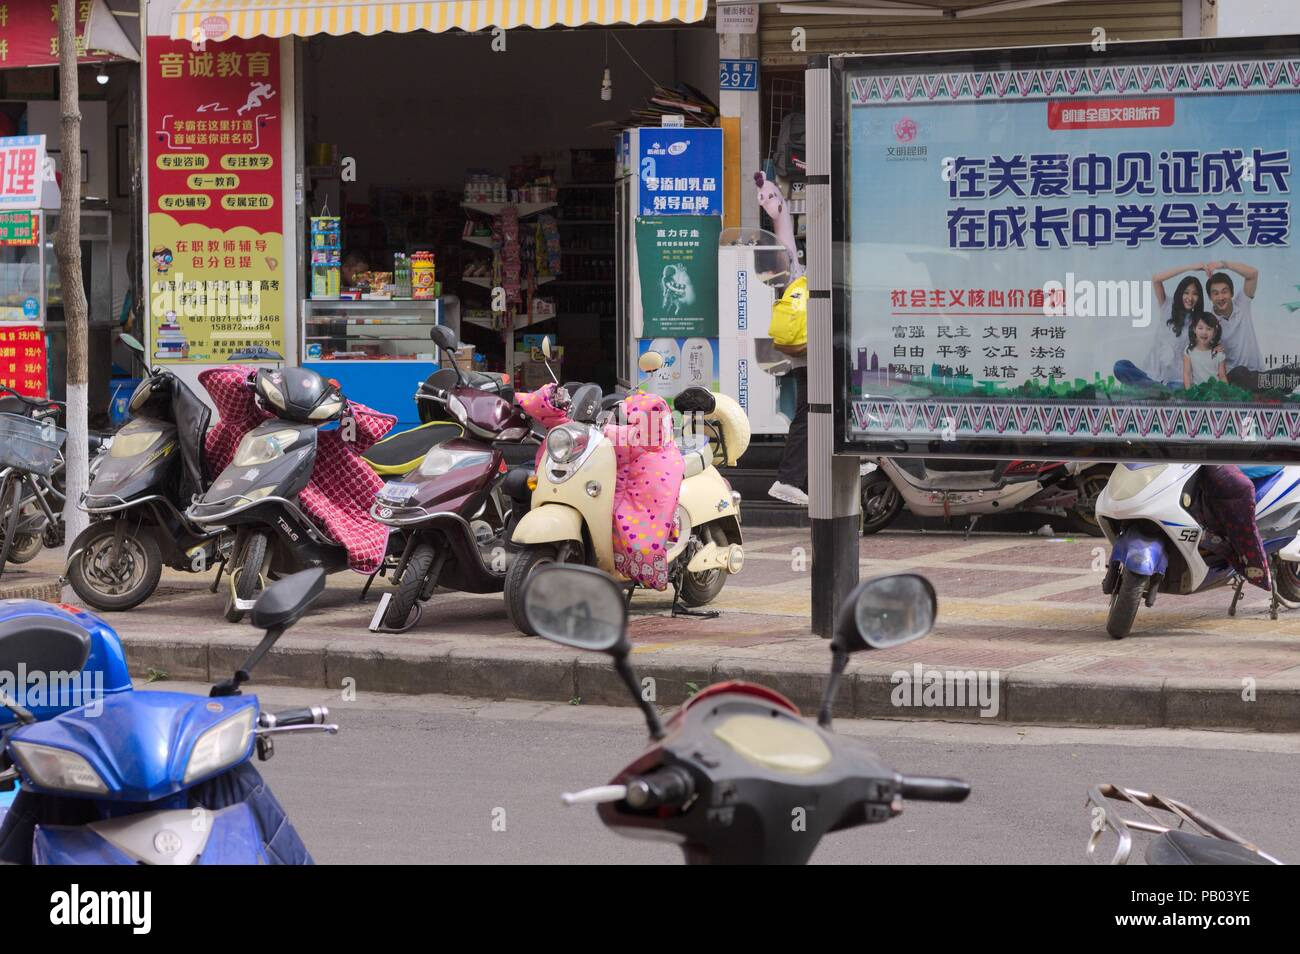 Chinese Scooter Stock Photos & Chinese Scooter Stock Images - Alamy